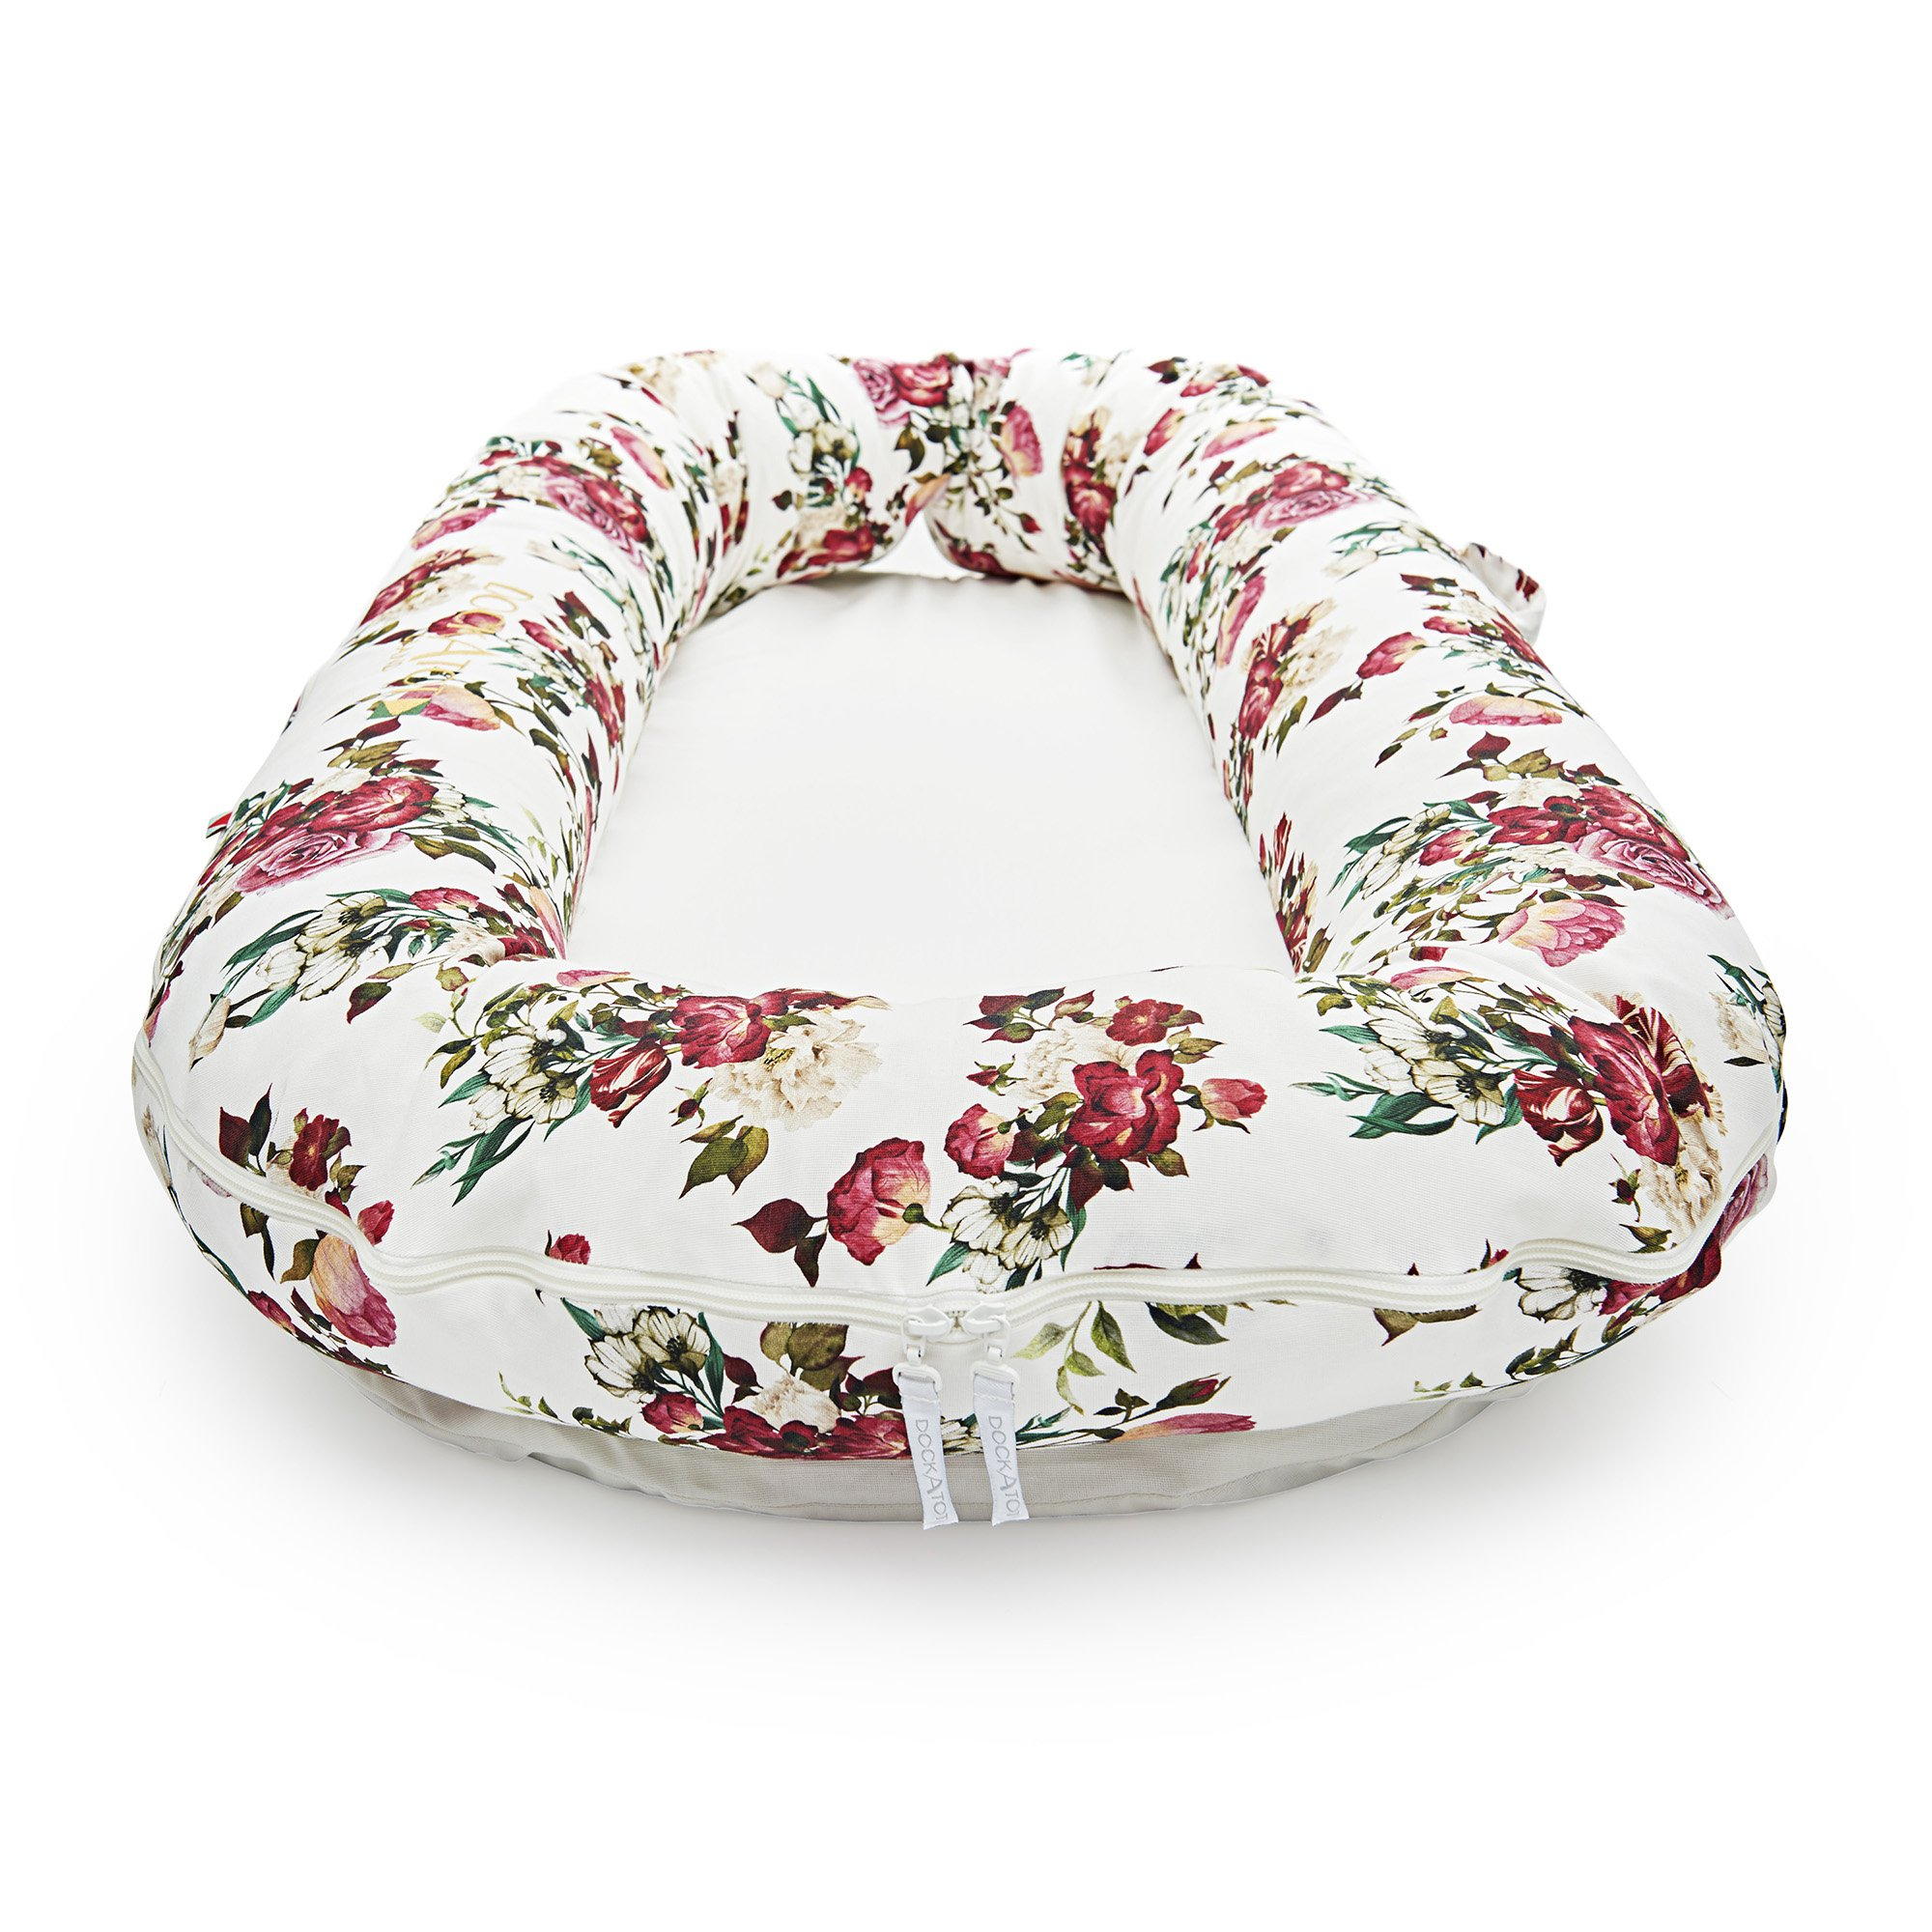 Dockatot Grand La Vie En Rose Baby Lounger Pillows